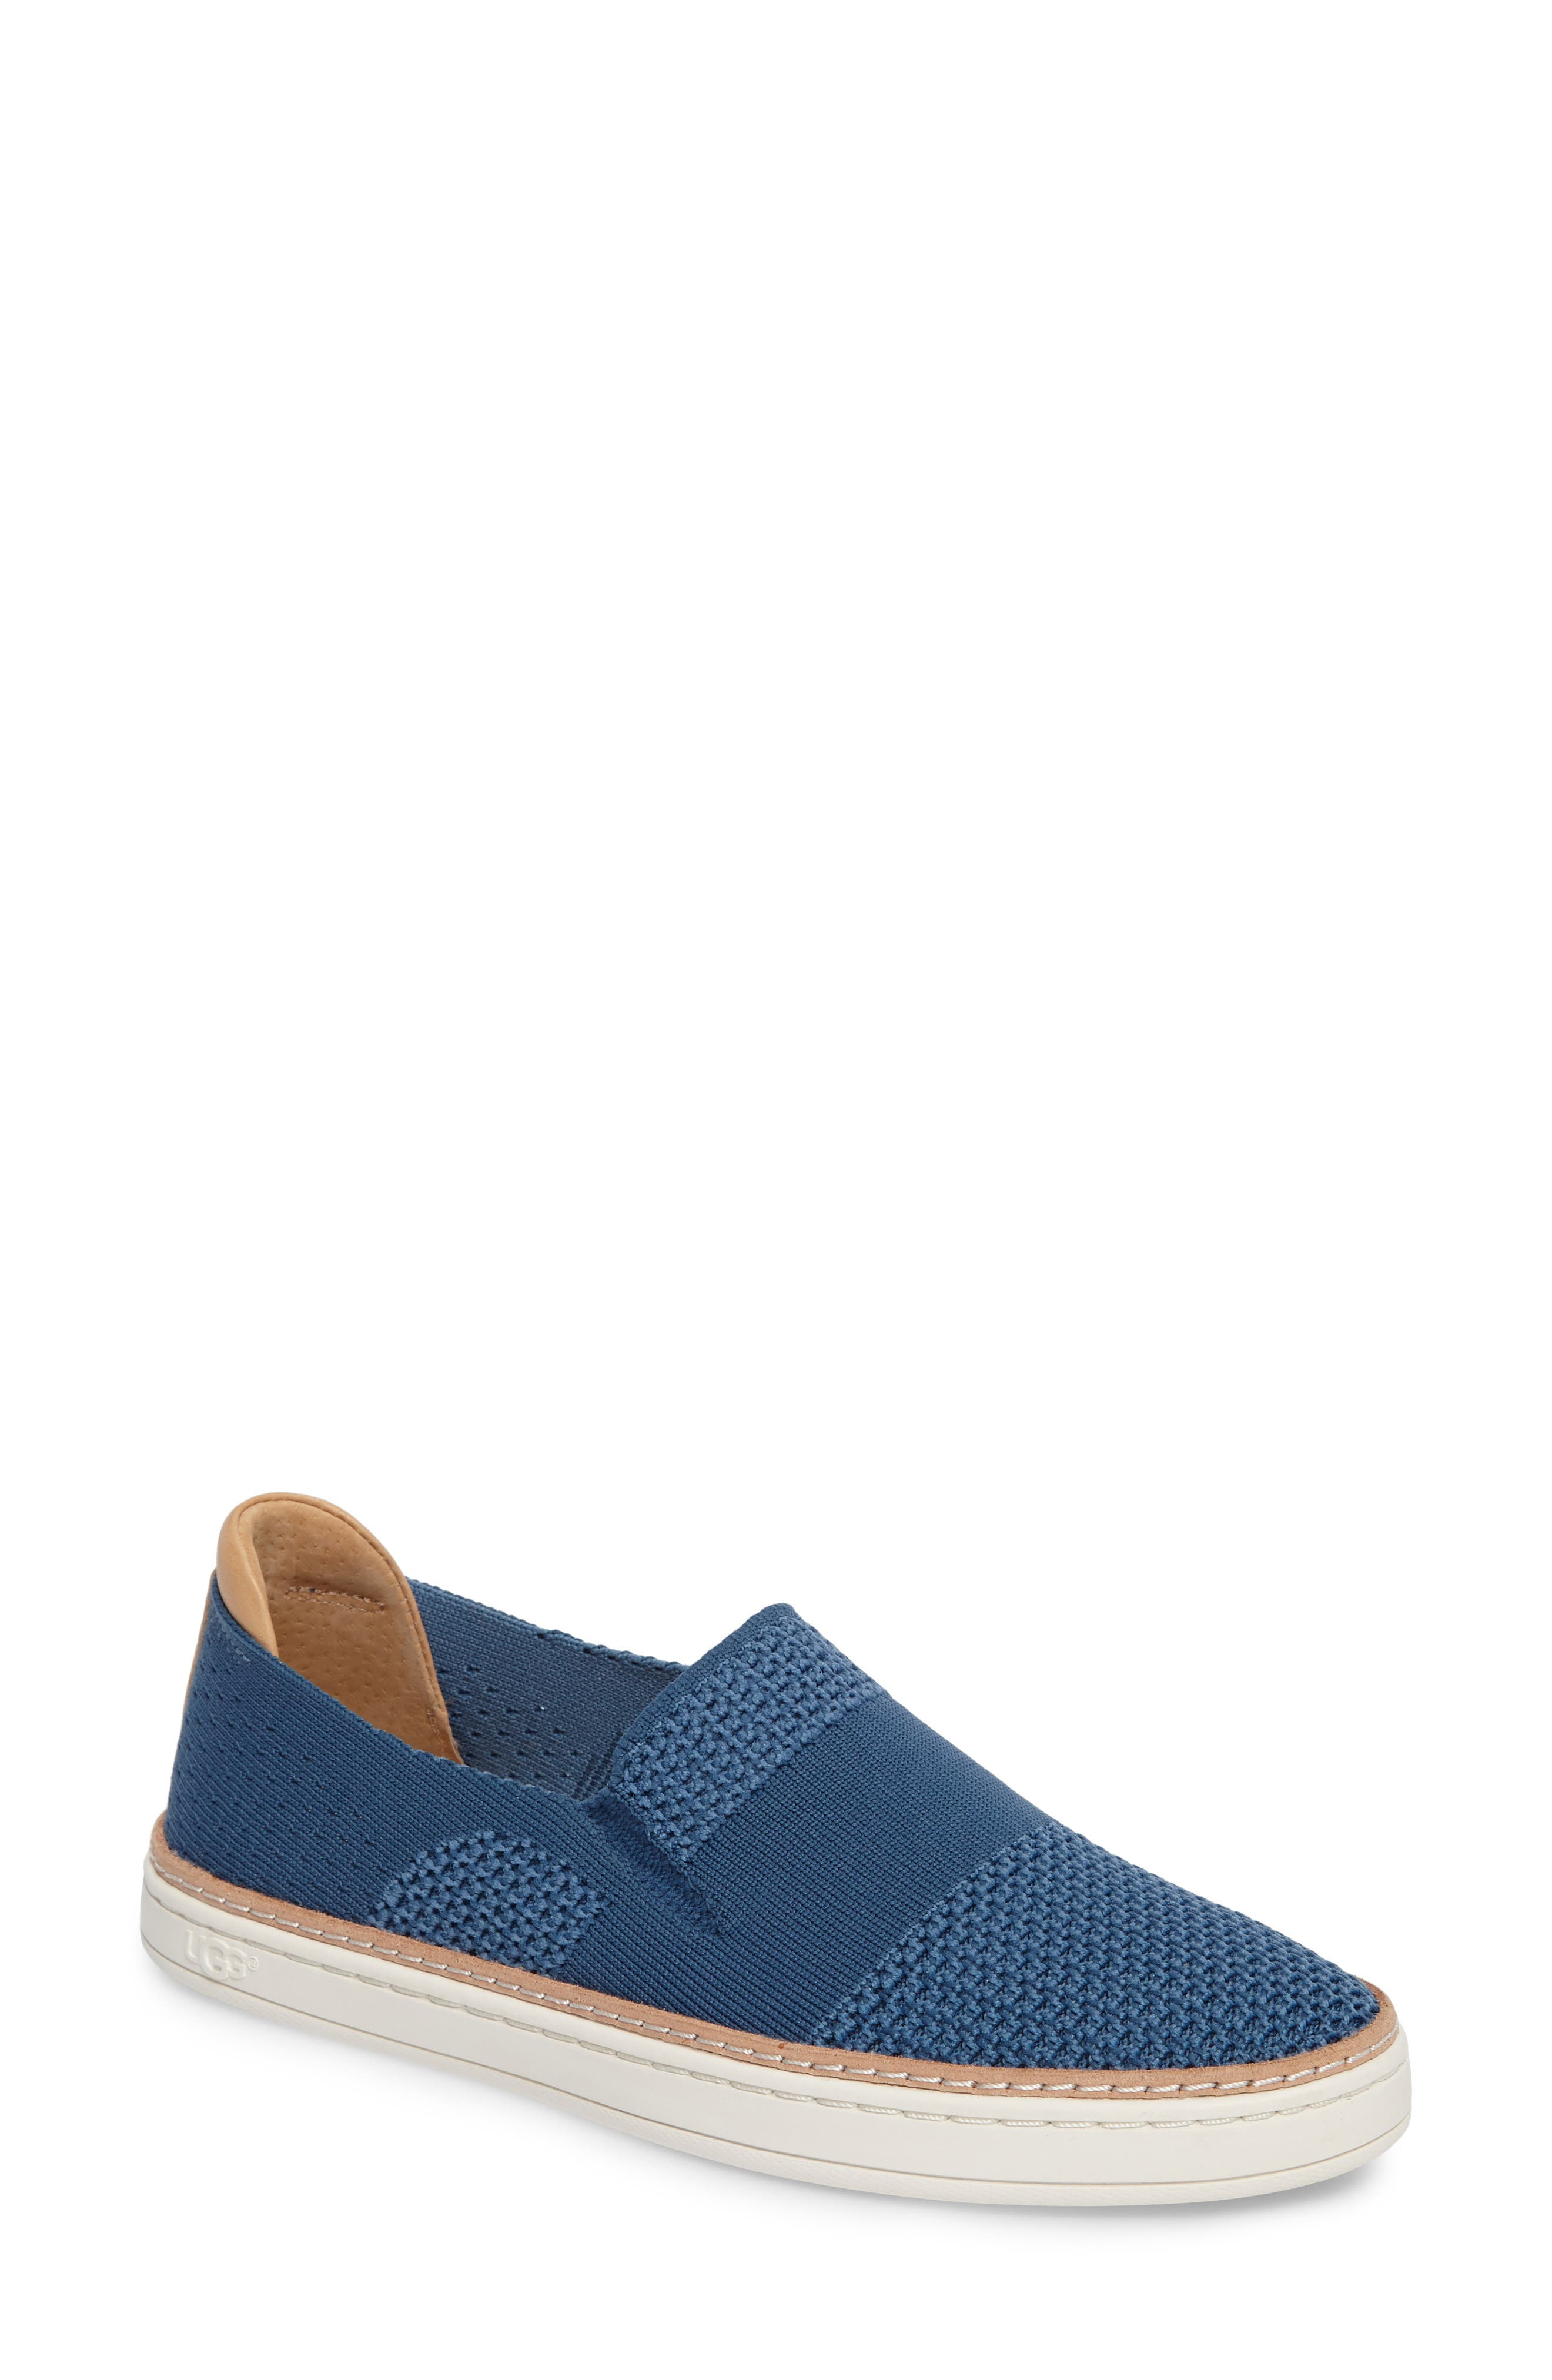 Sammy Sneaker,                         Main,                         color, Deep River Fabric